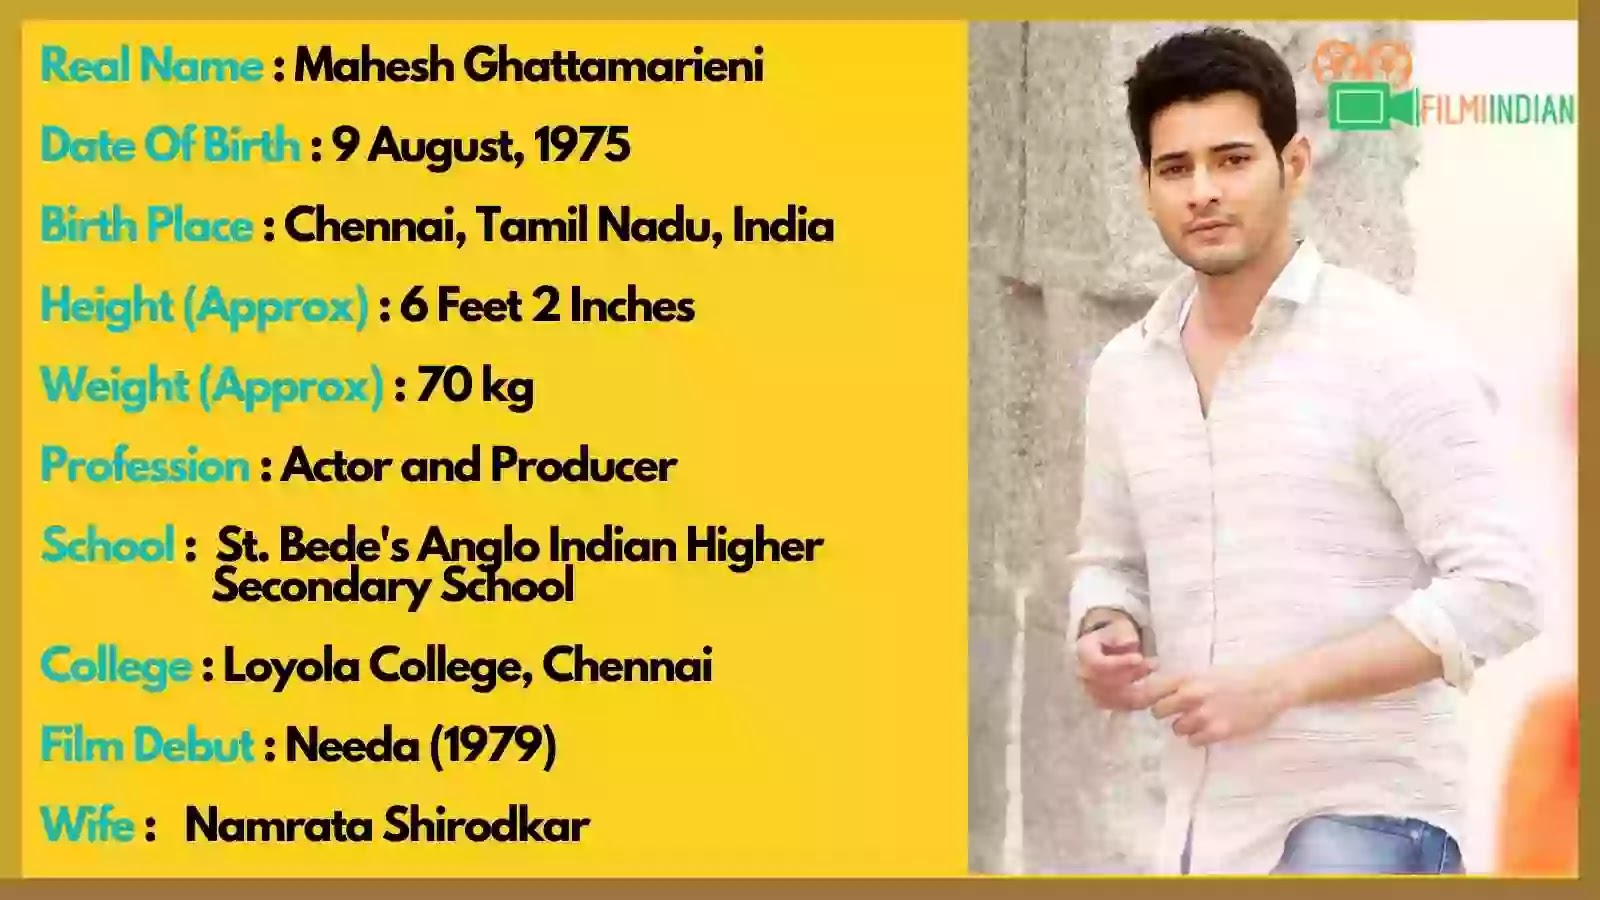 Mahesh Babu Age : Mahesh Babu Best Biography (2020), Family, wife, Children, life story, Profile and Weight